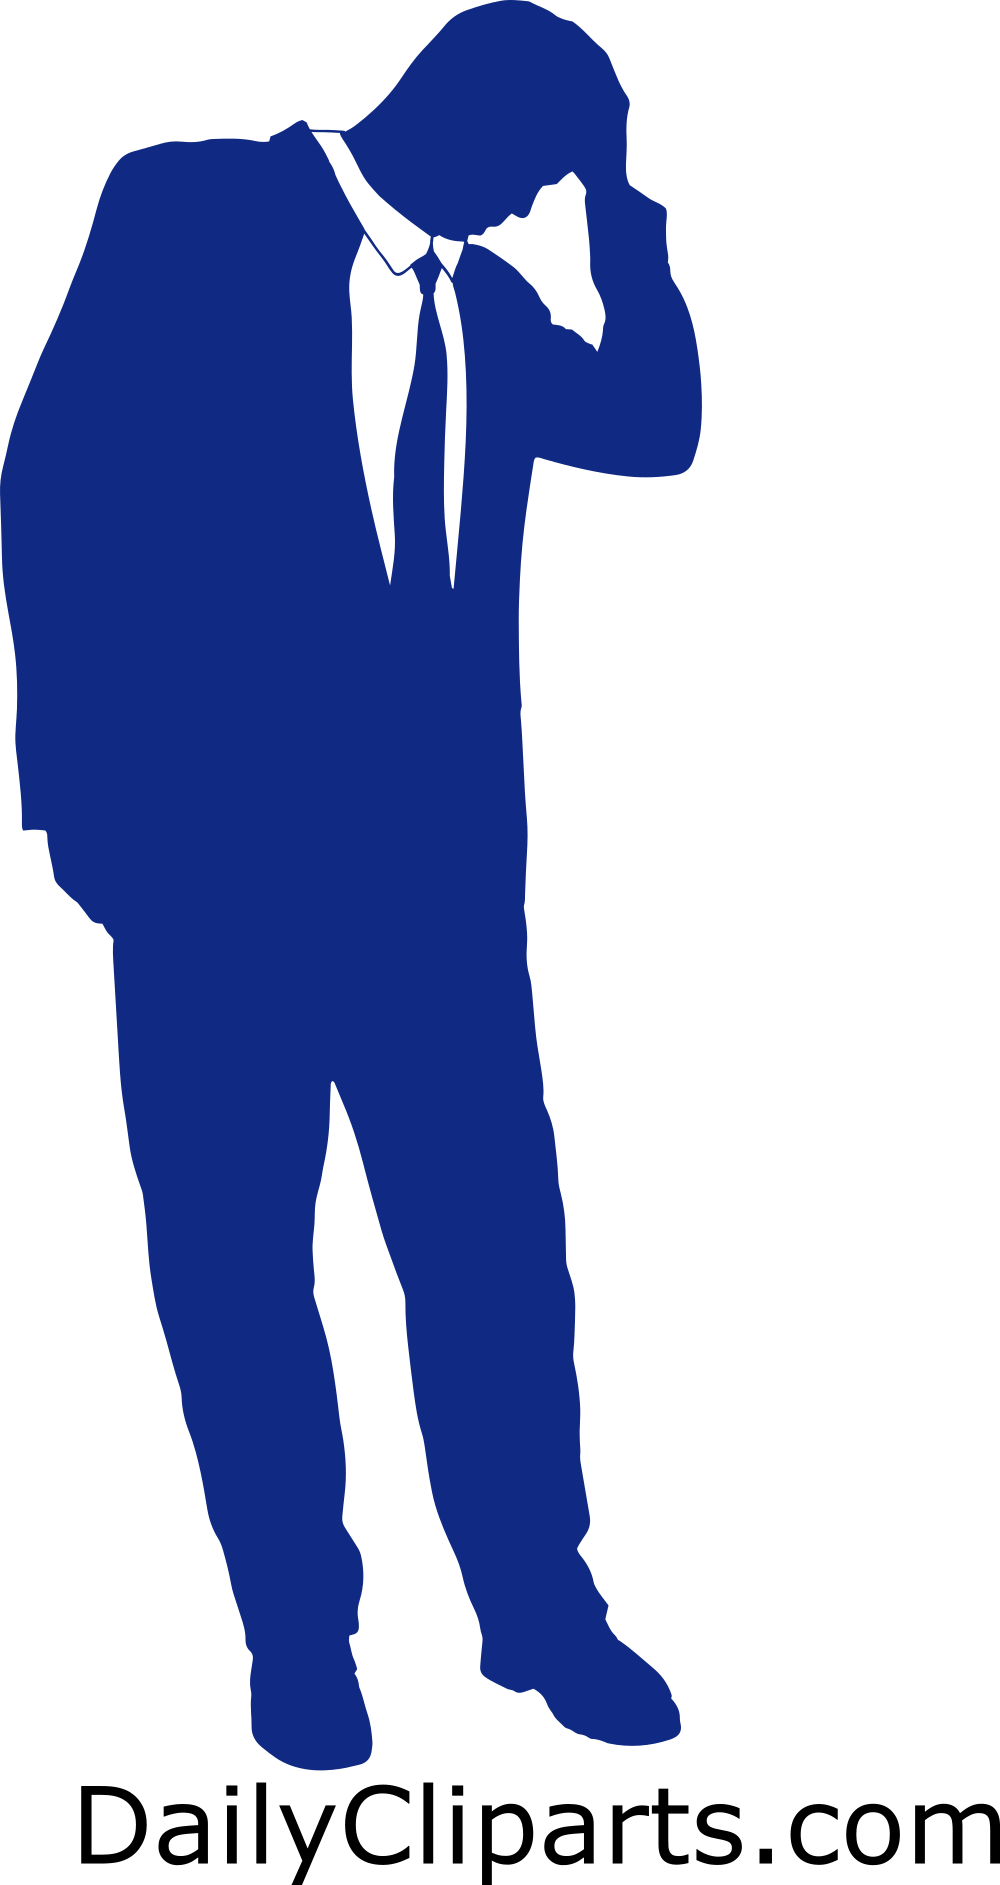 Frustrated clipart frustrated employee. Image daily cliparts